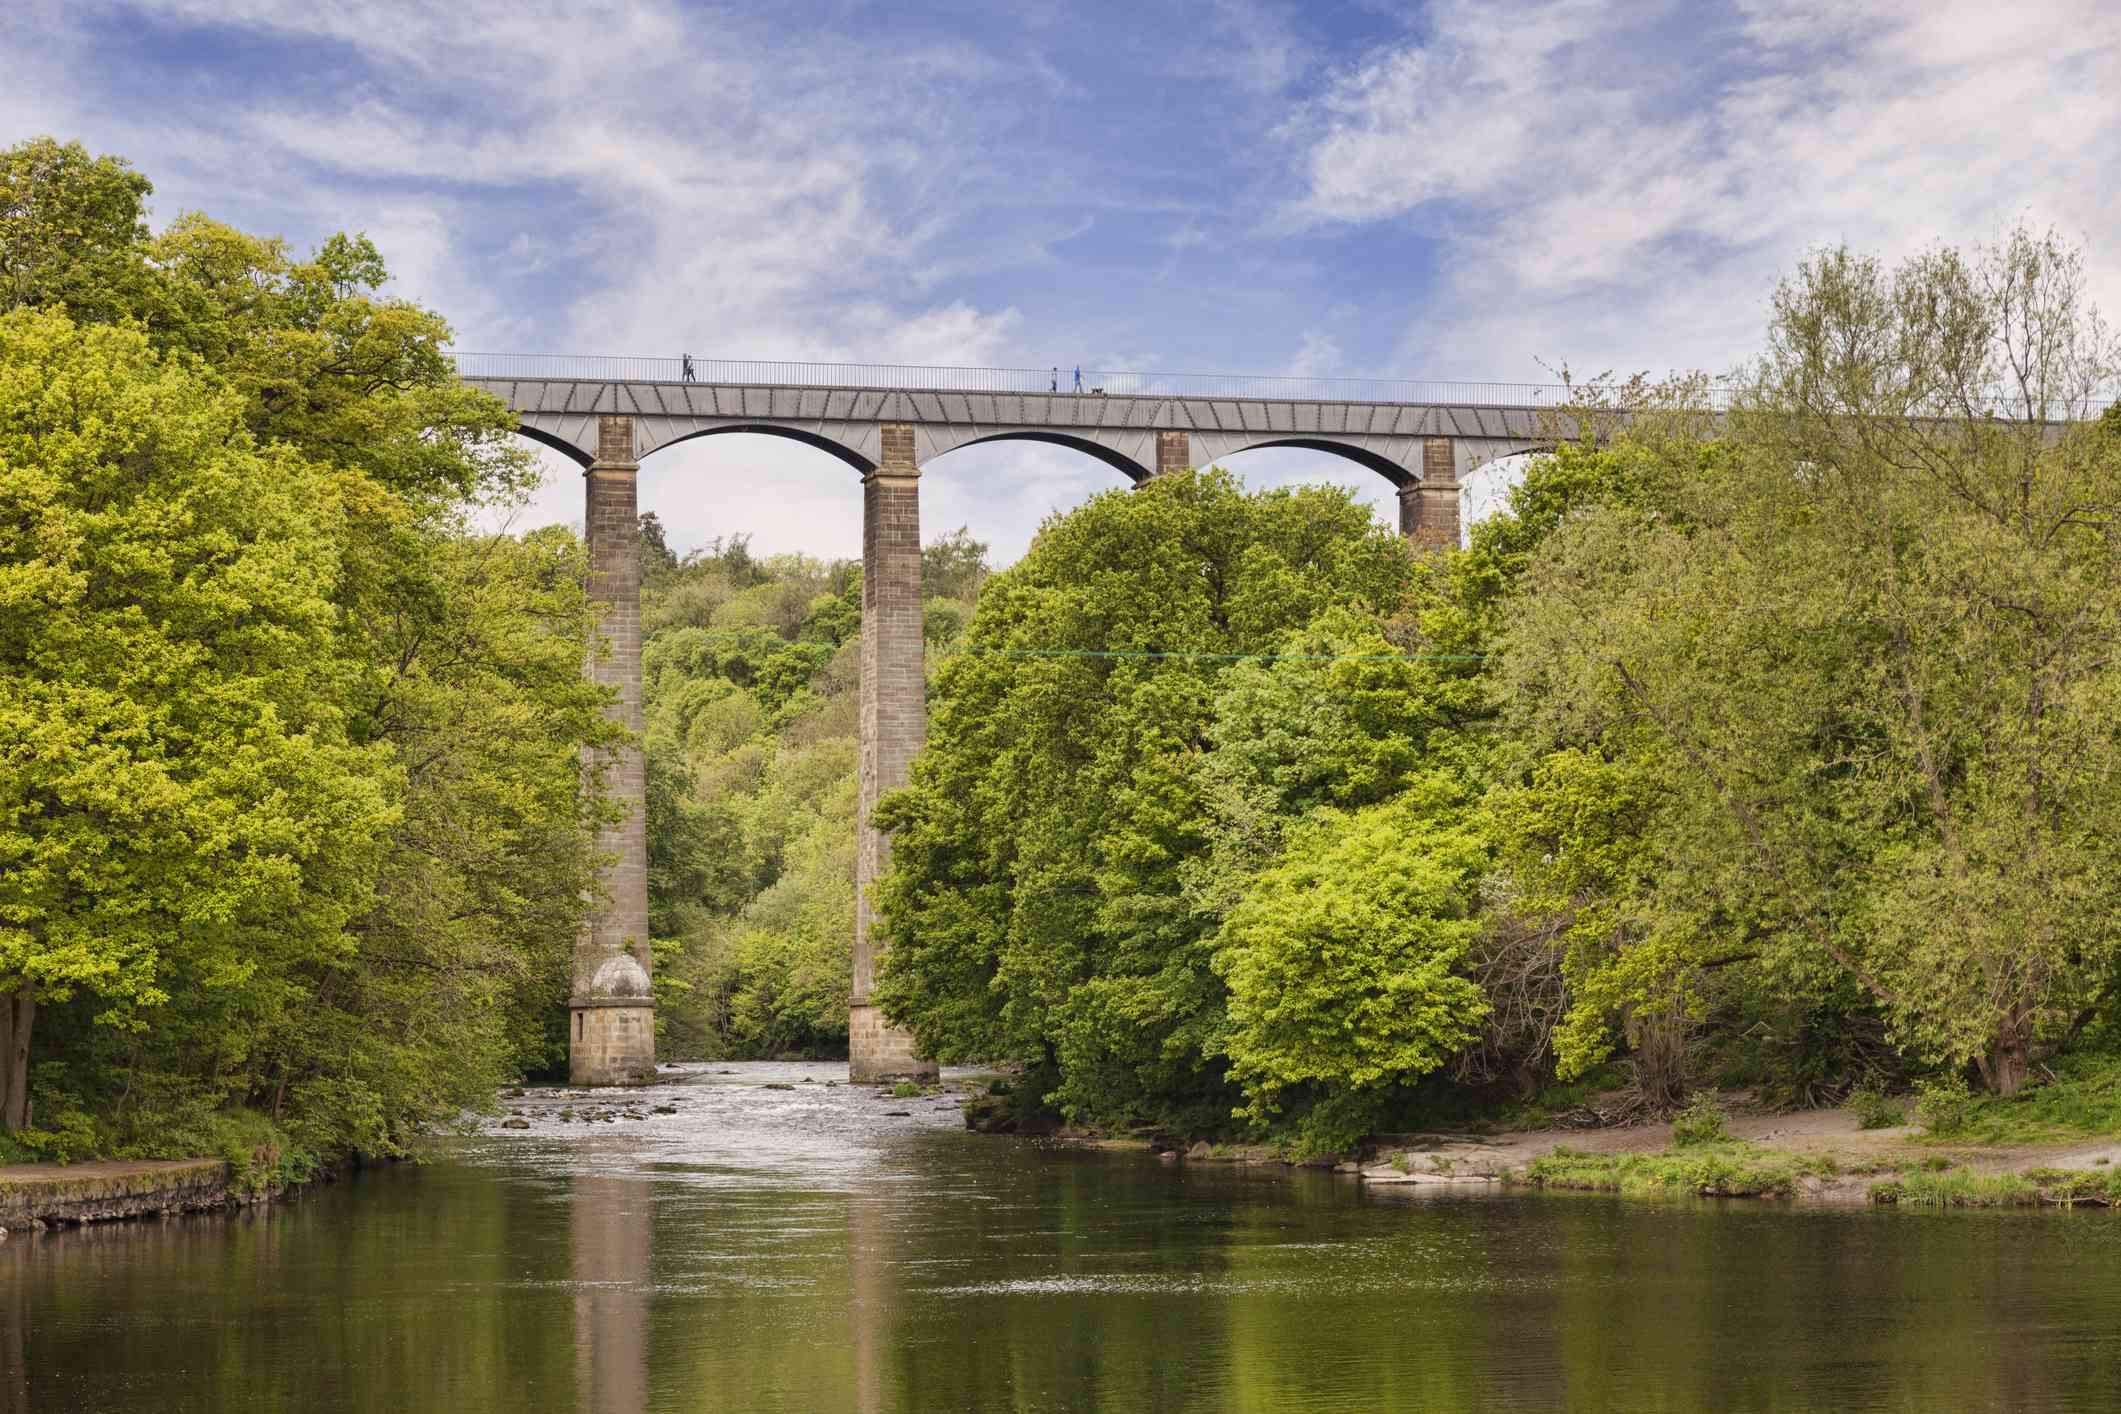 aqueduct over a body of water with trees on the banks